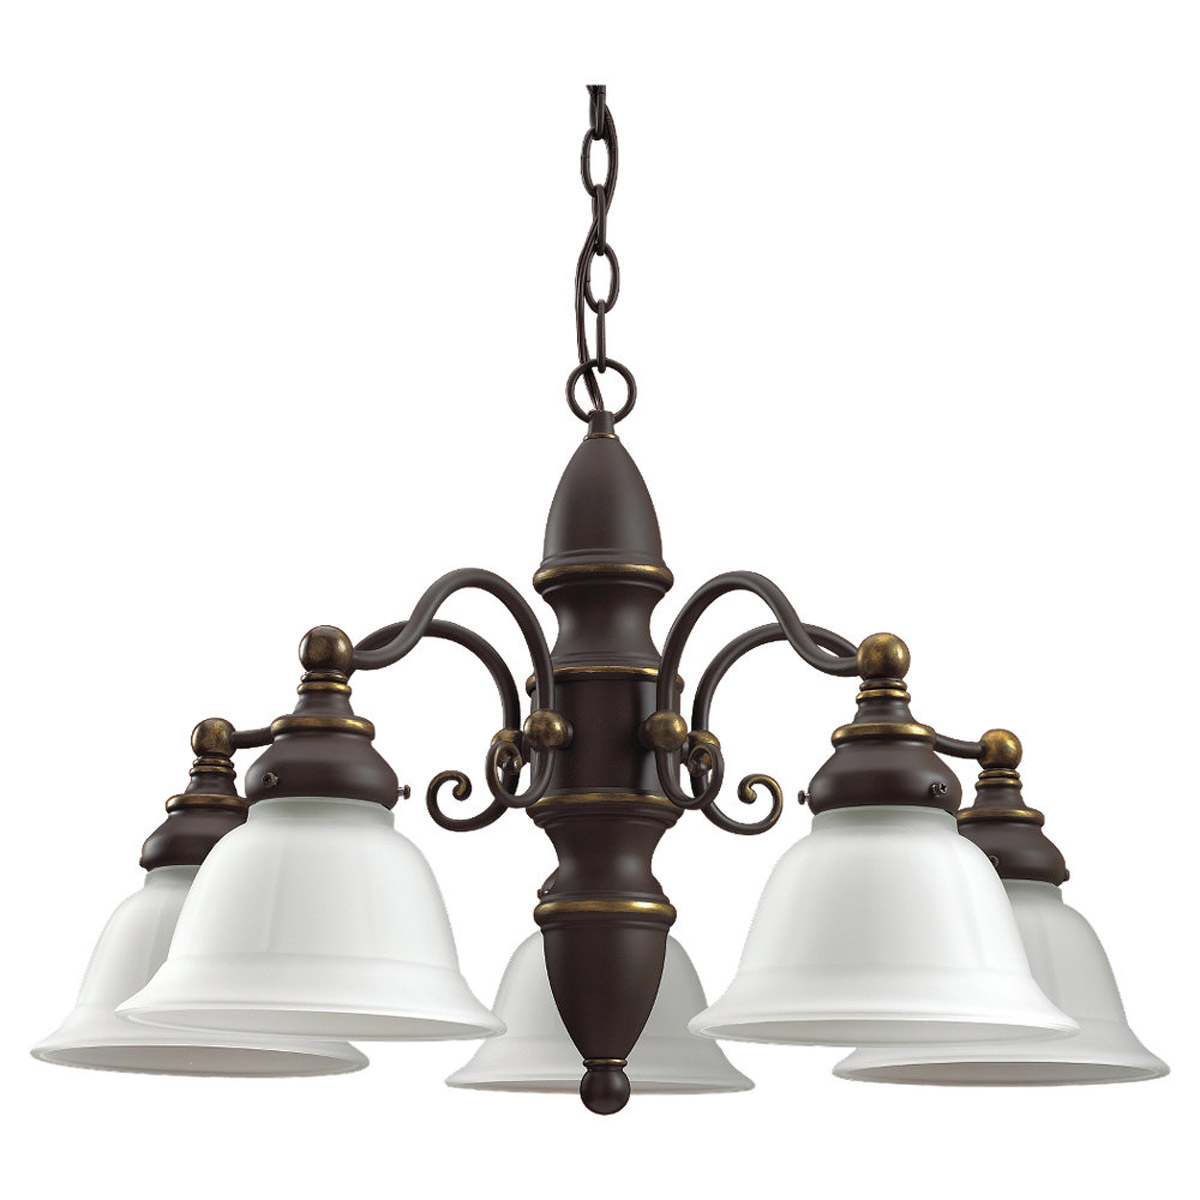 Sea Gull Lighting Canterbury 5 Light Chandelier in Antique Bronze 31051-71